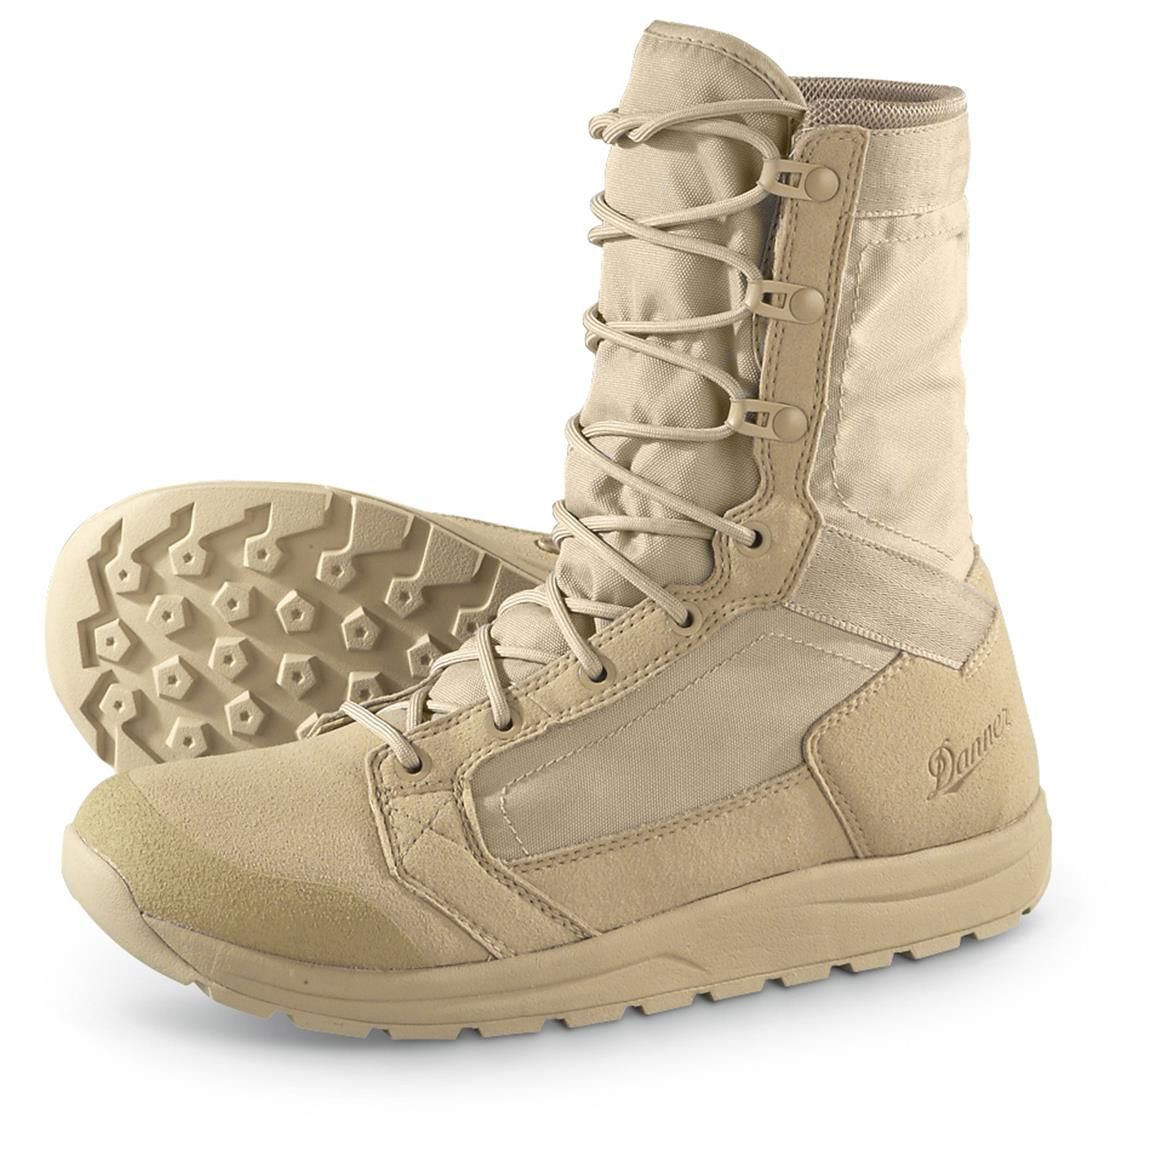 Danner Tachyon Lightweight Tactical Boots, Tan | Mens